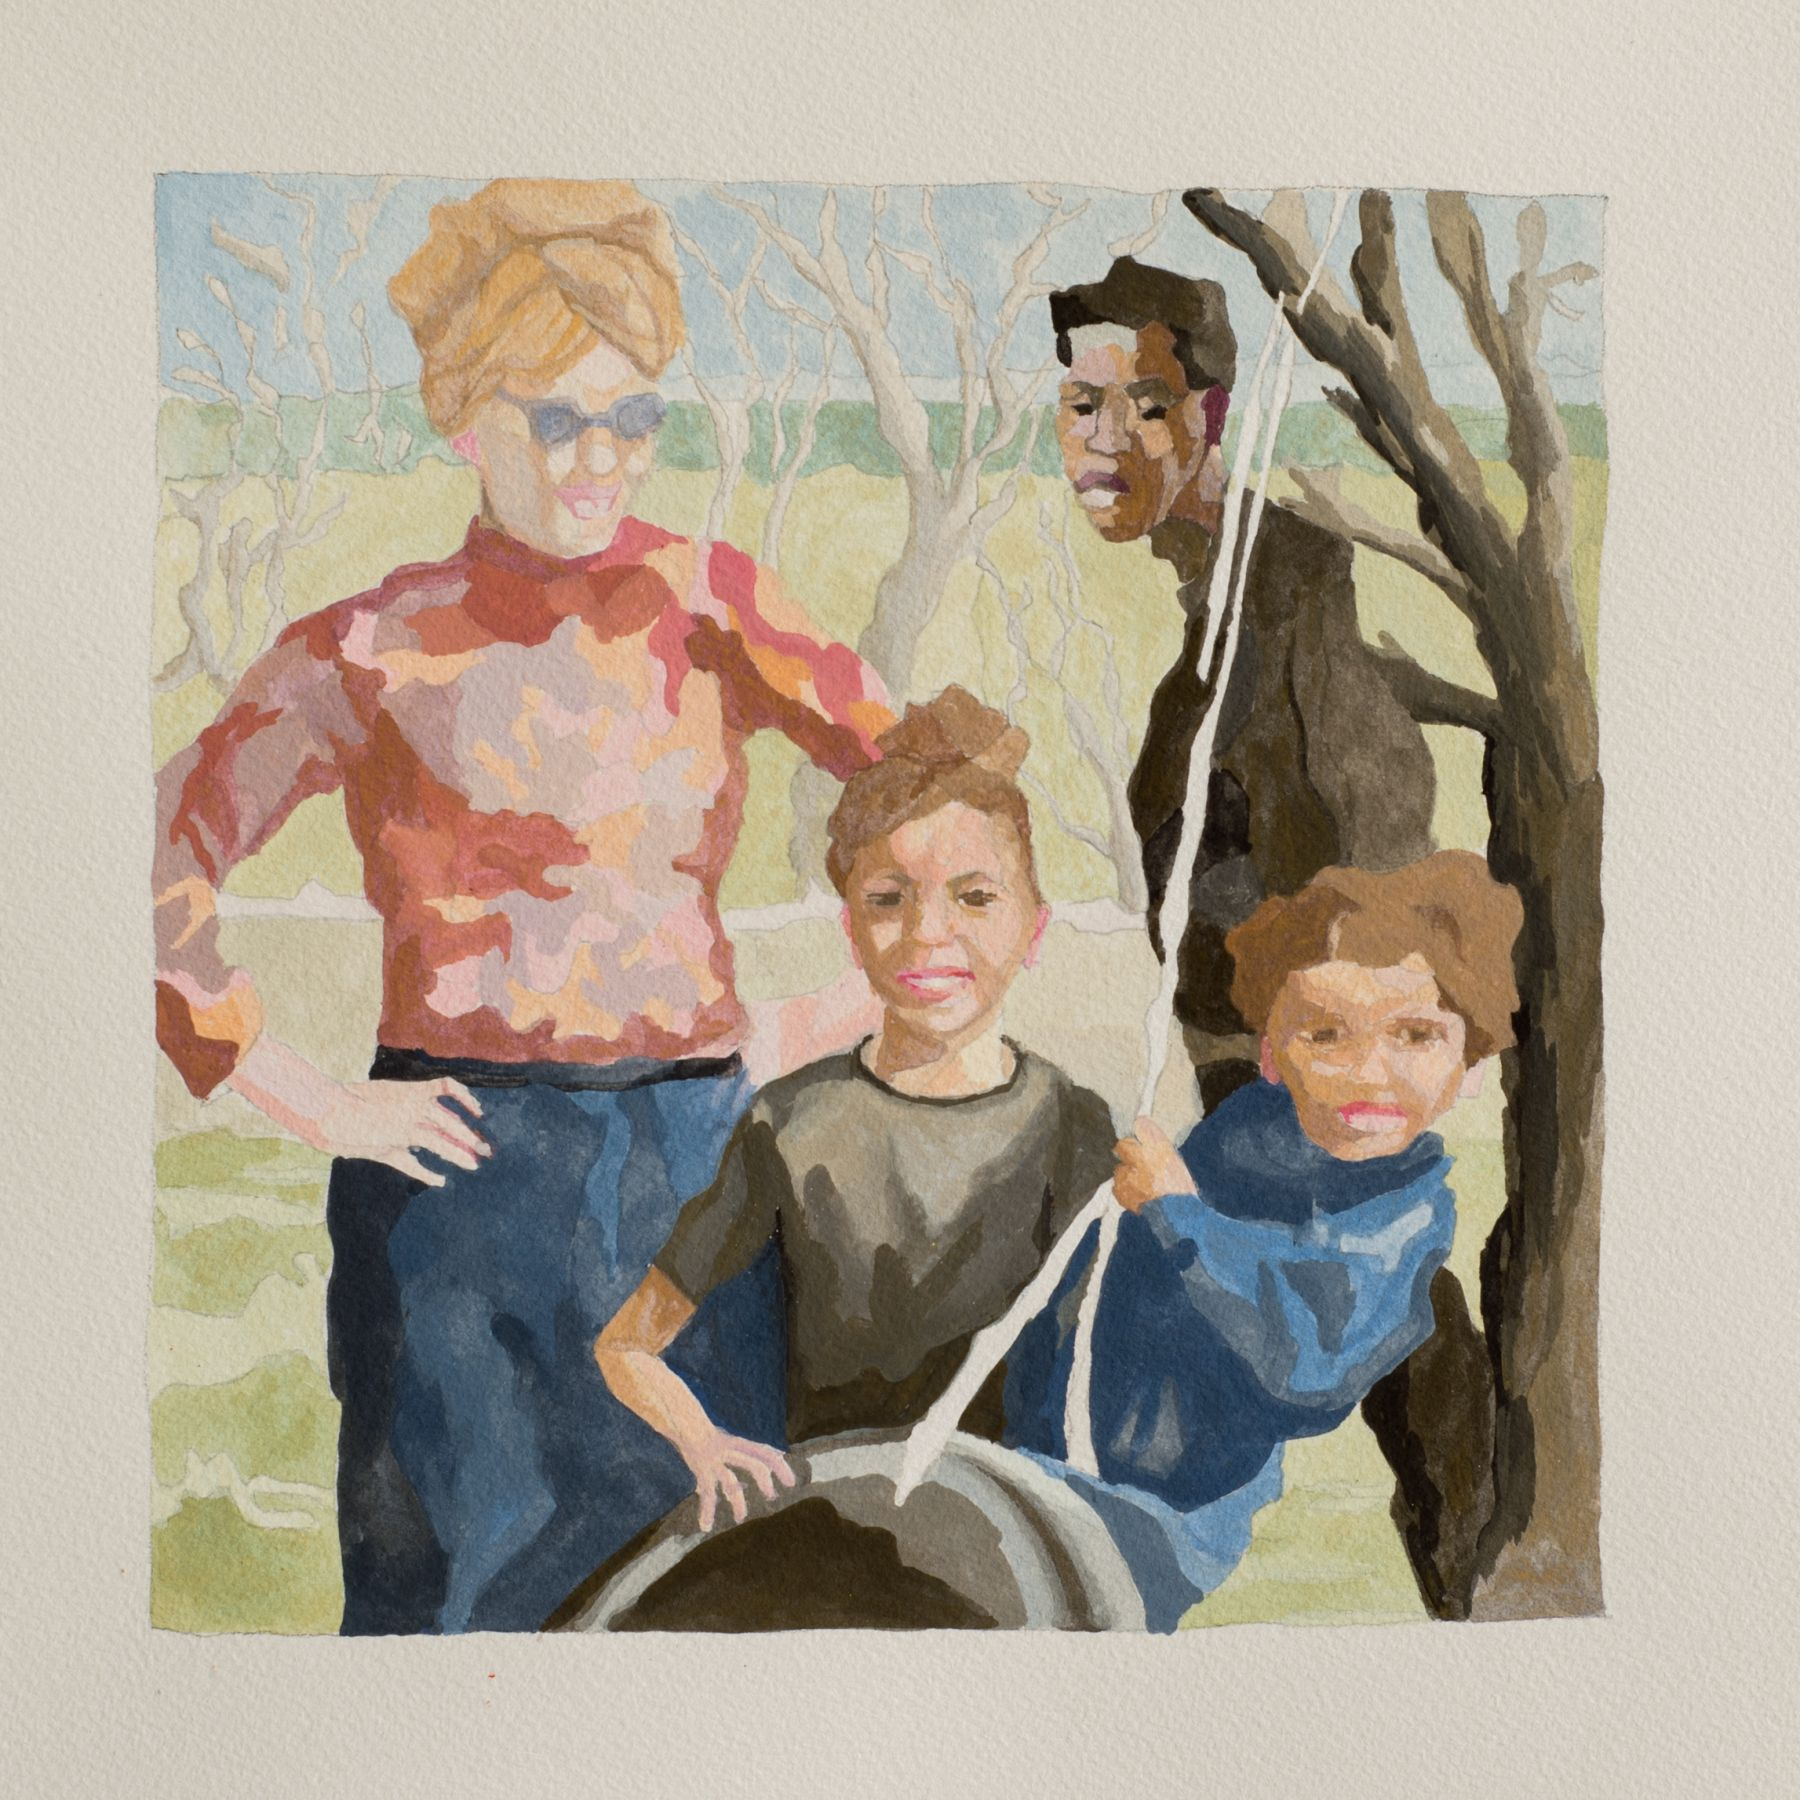 RUTH OWENS, Good Family, study, 2018